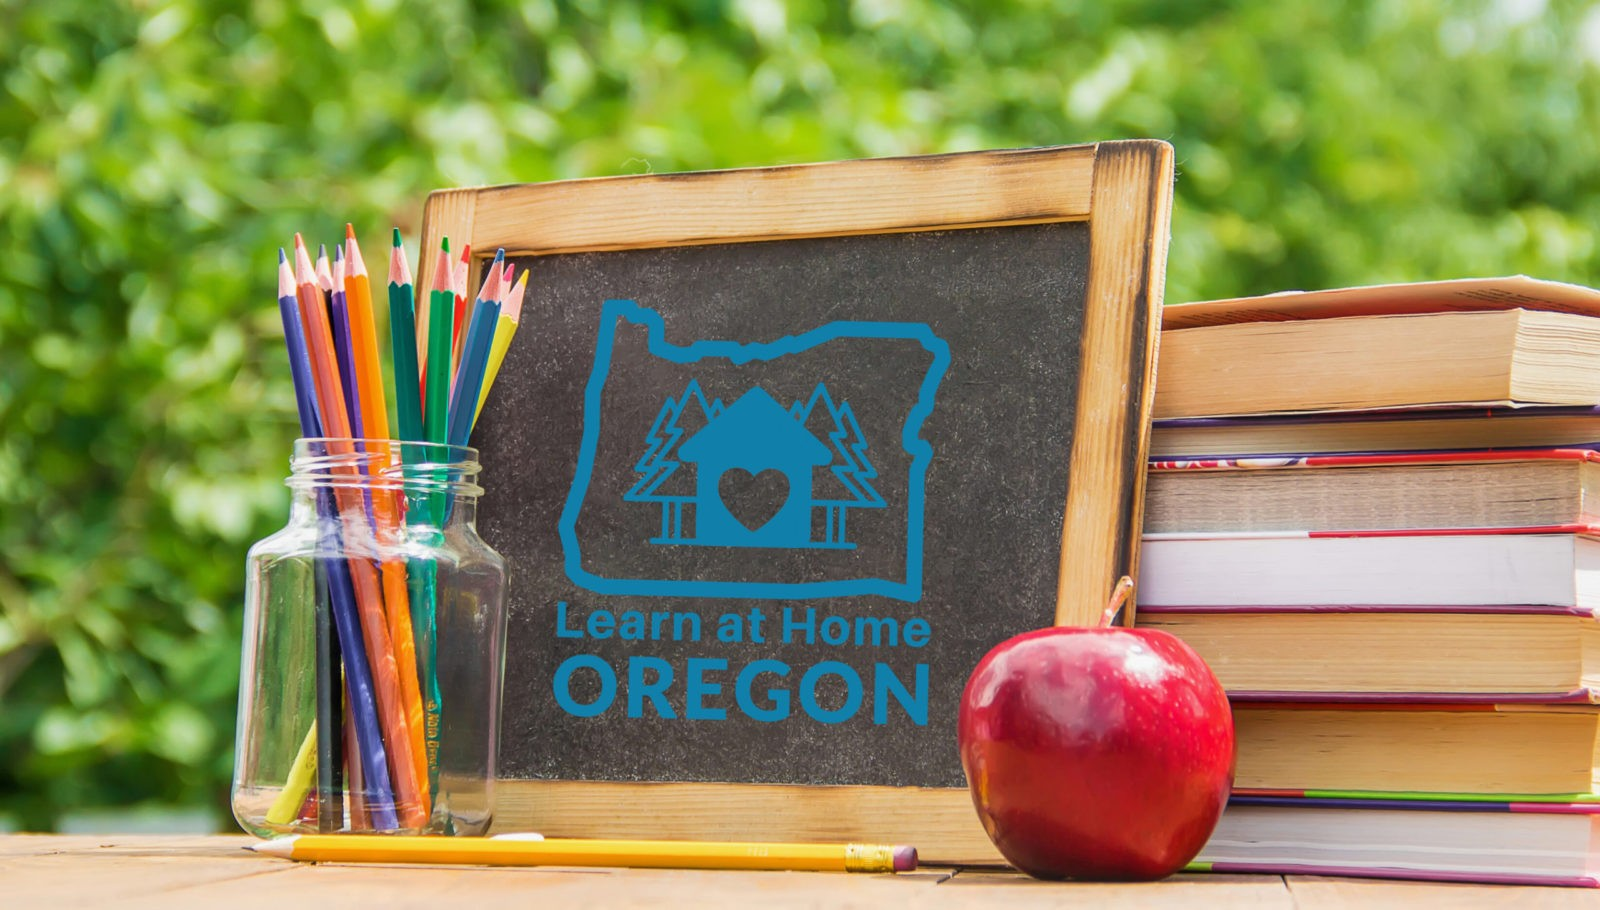 Video Trailer | Learn at Home Oregon